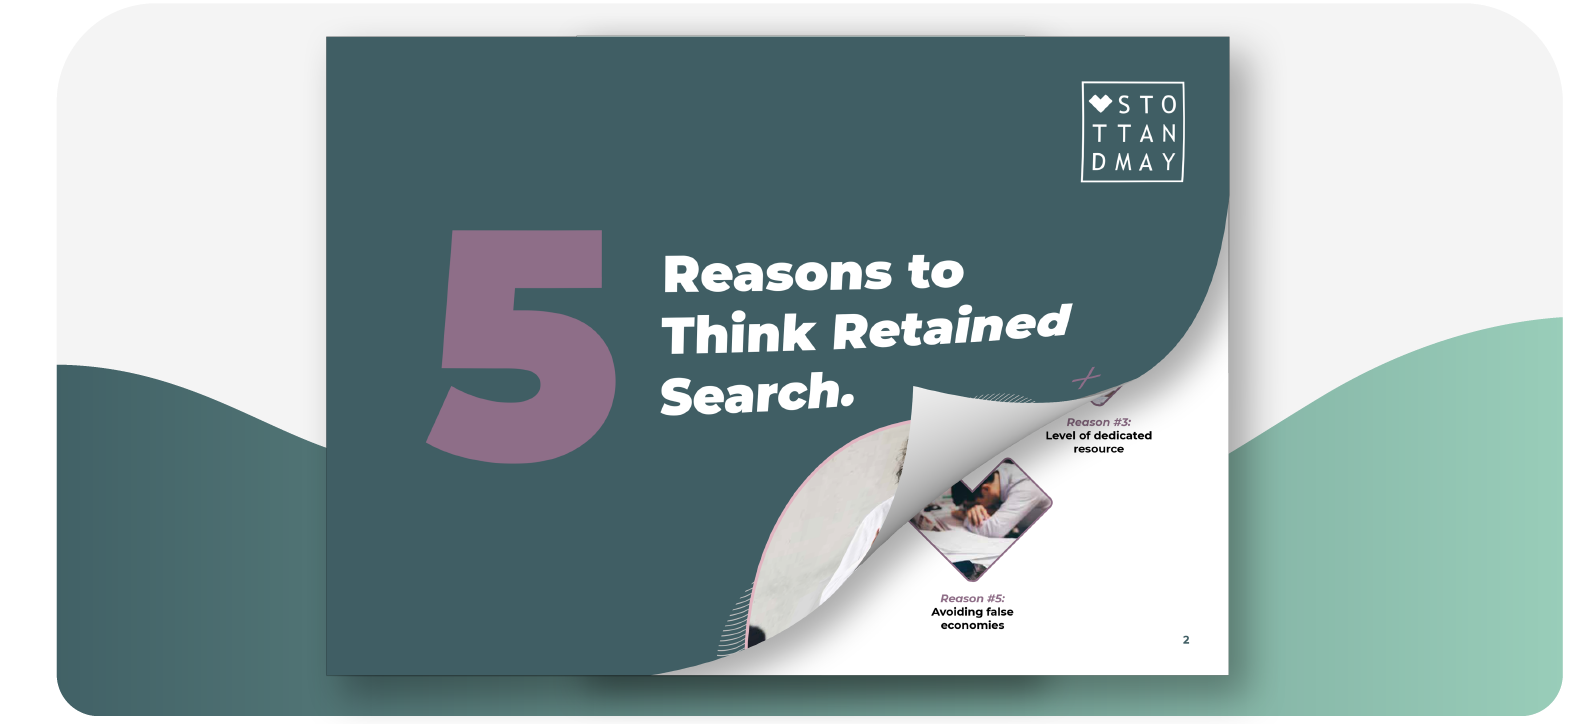 Resources CTA template 5 reasons to think retained search 3